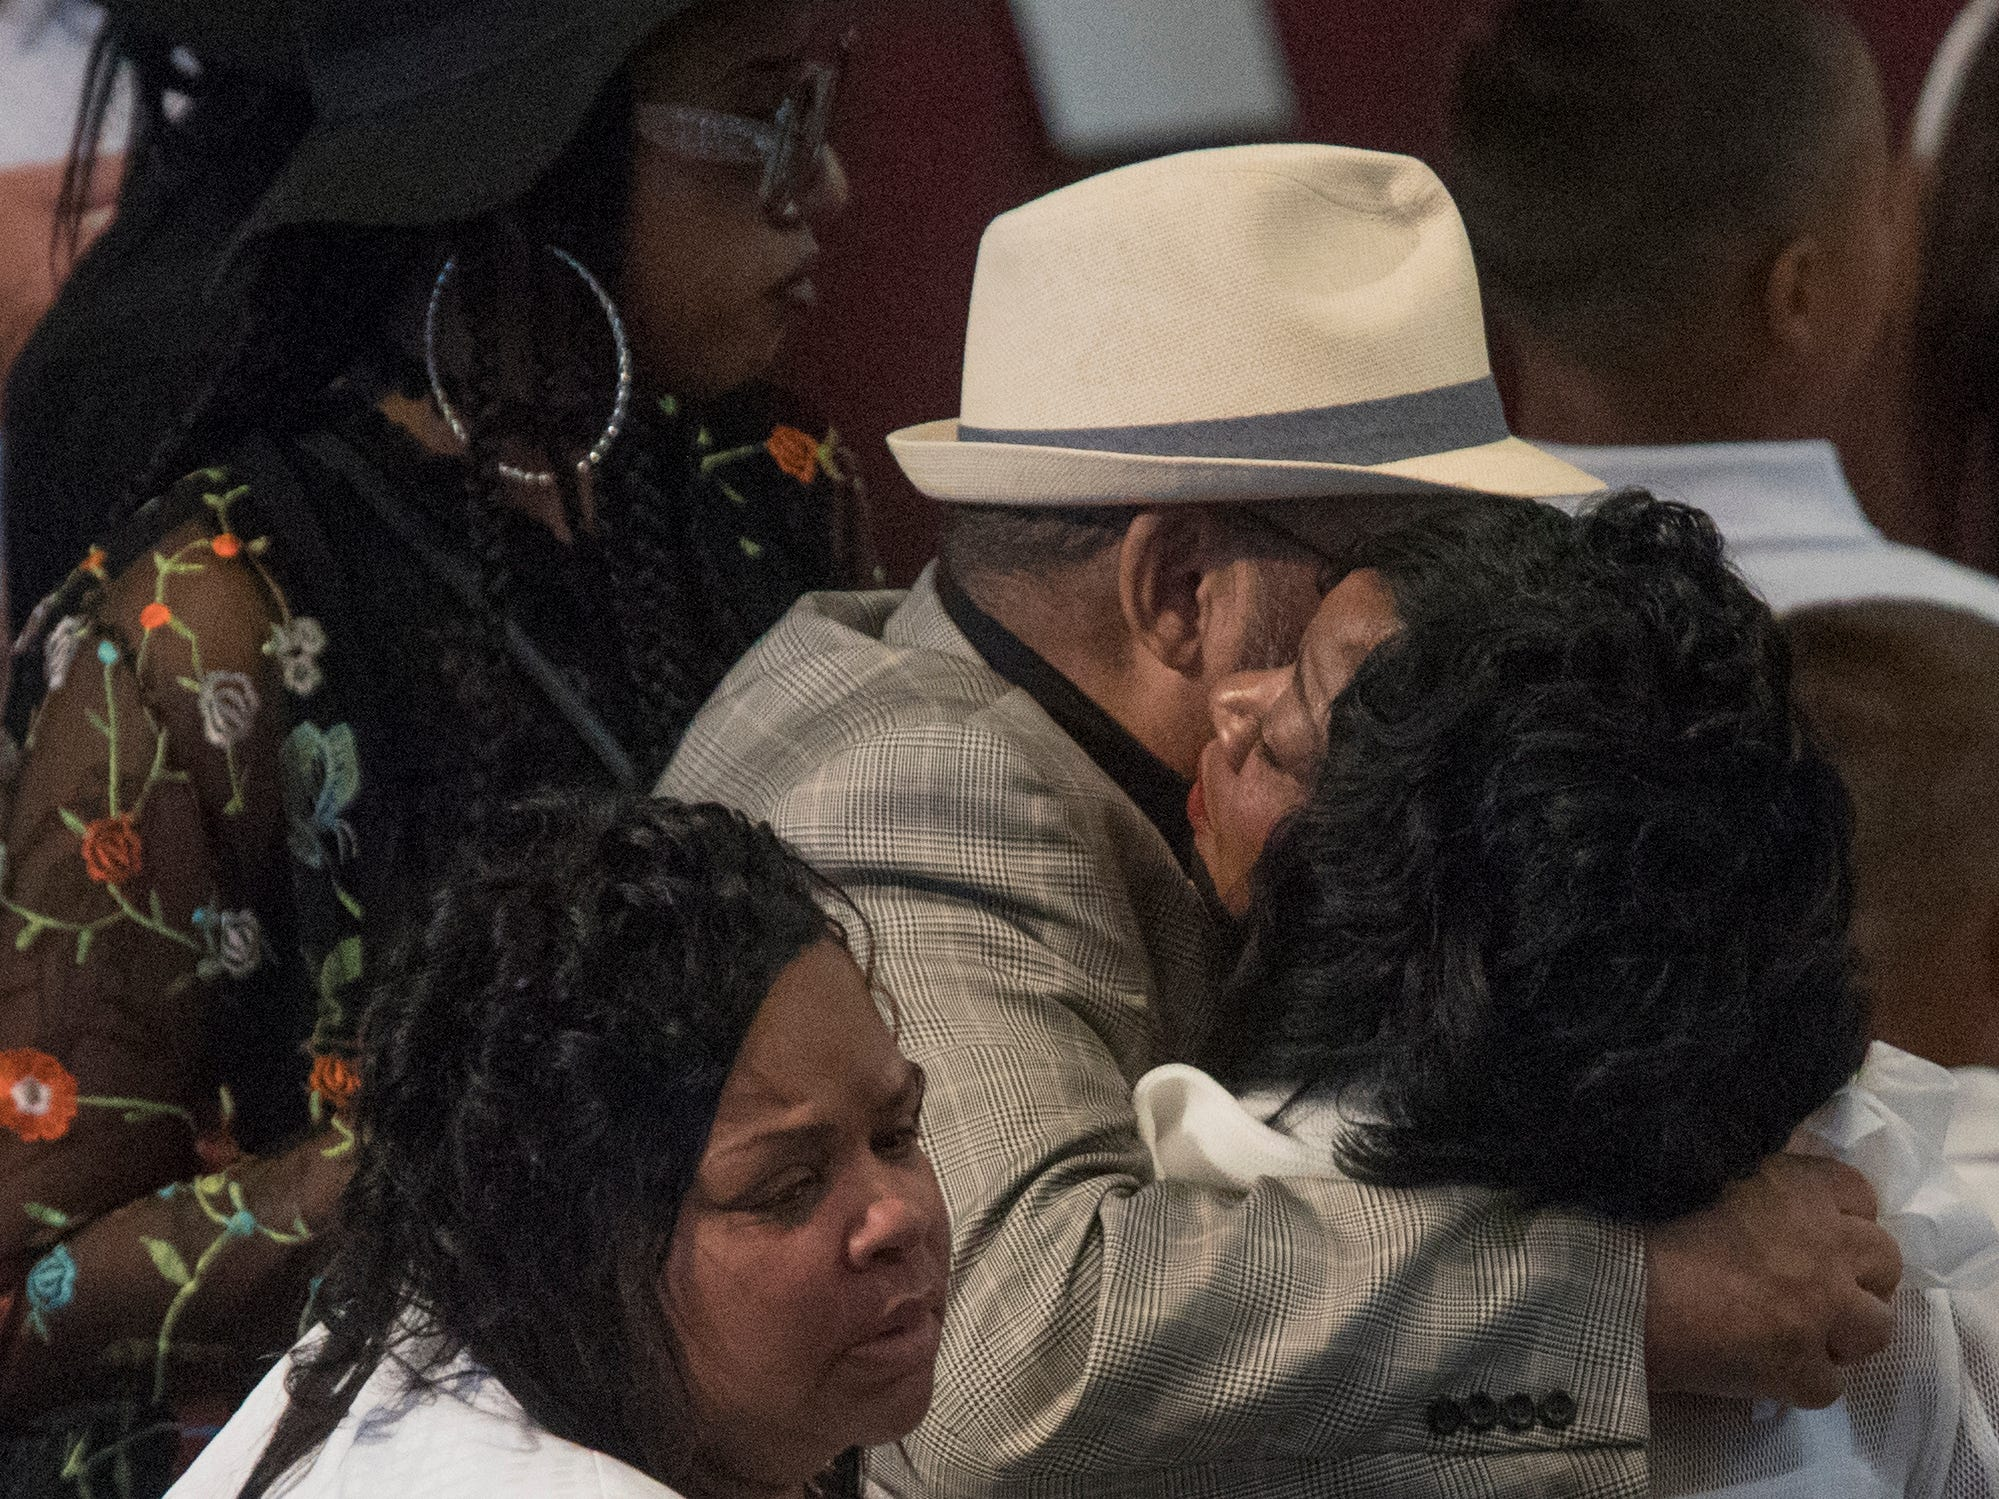 Family and friends embrace Denina Cupid Sharp before the homegoing service of Glenn Coleman, 40, Reece, 9, Evan, 7, and Arya, 1, at Grace Apostolic Church on Friday, July 27, 2018. Seventeen people were killed in the duck boat accident in Branson, Missouri, nine of them were members of the Coleman family.